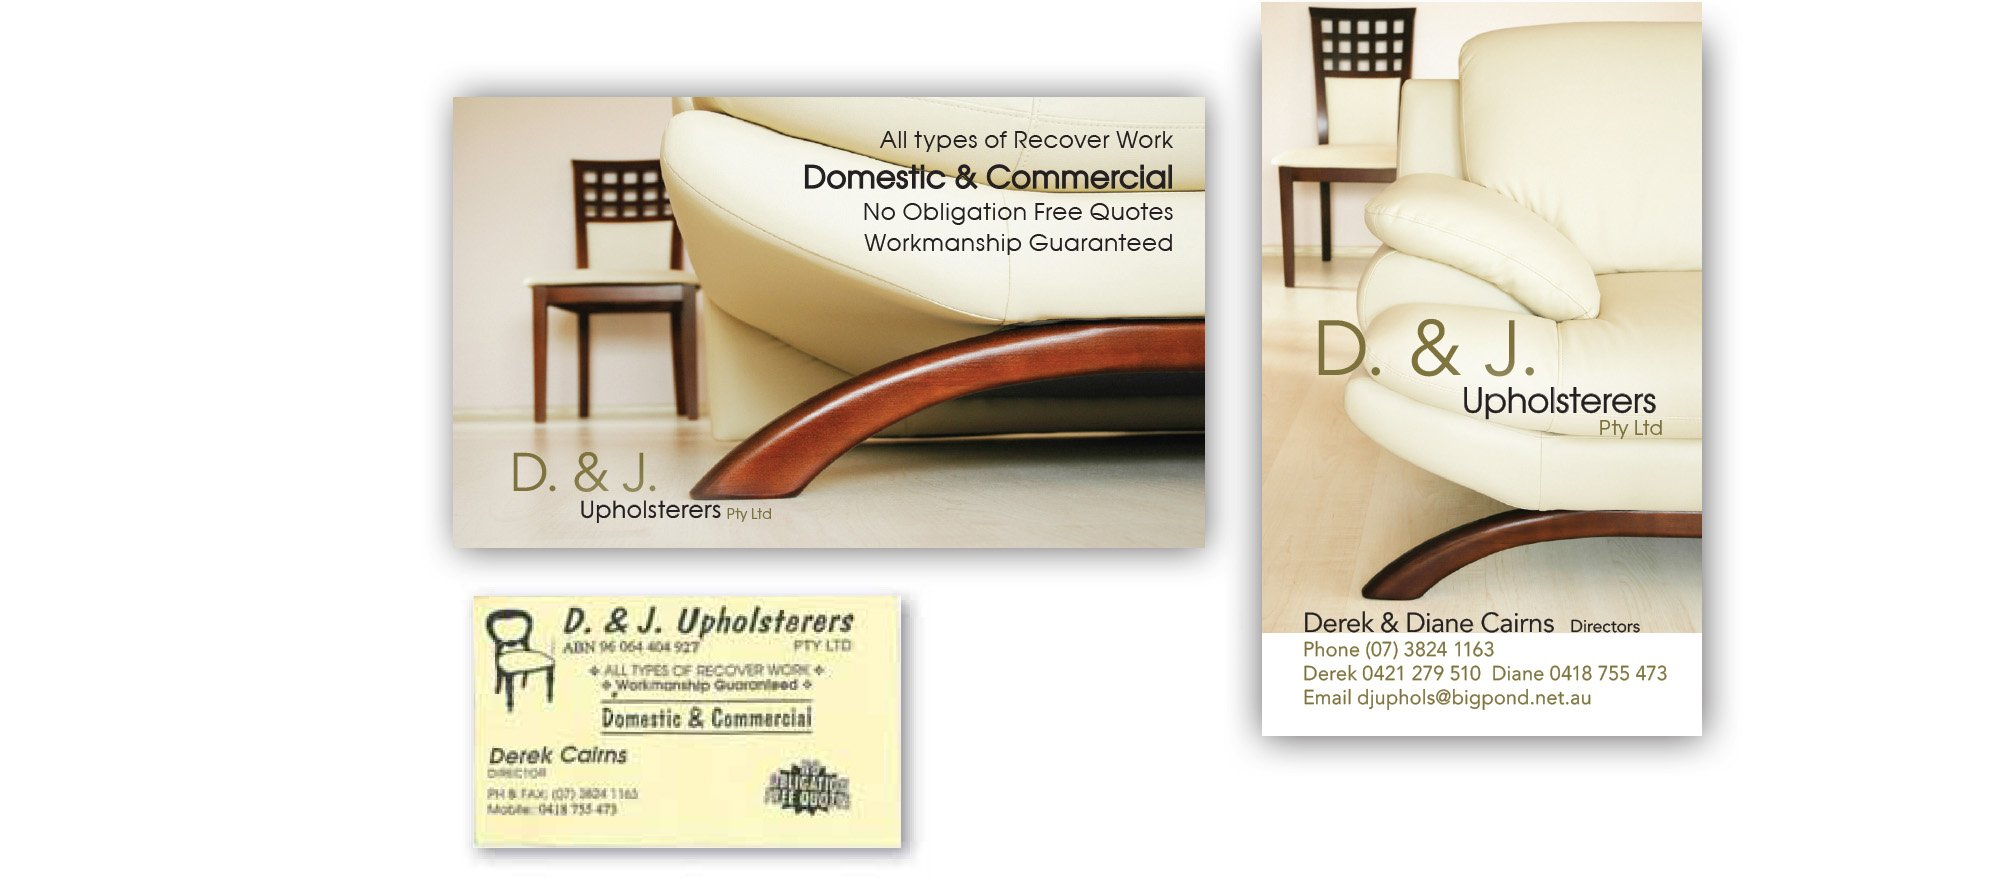 D & J Upholsteres brand - business cards